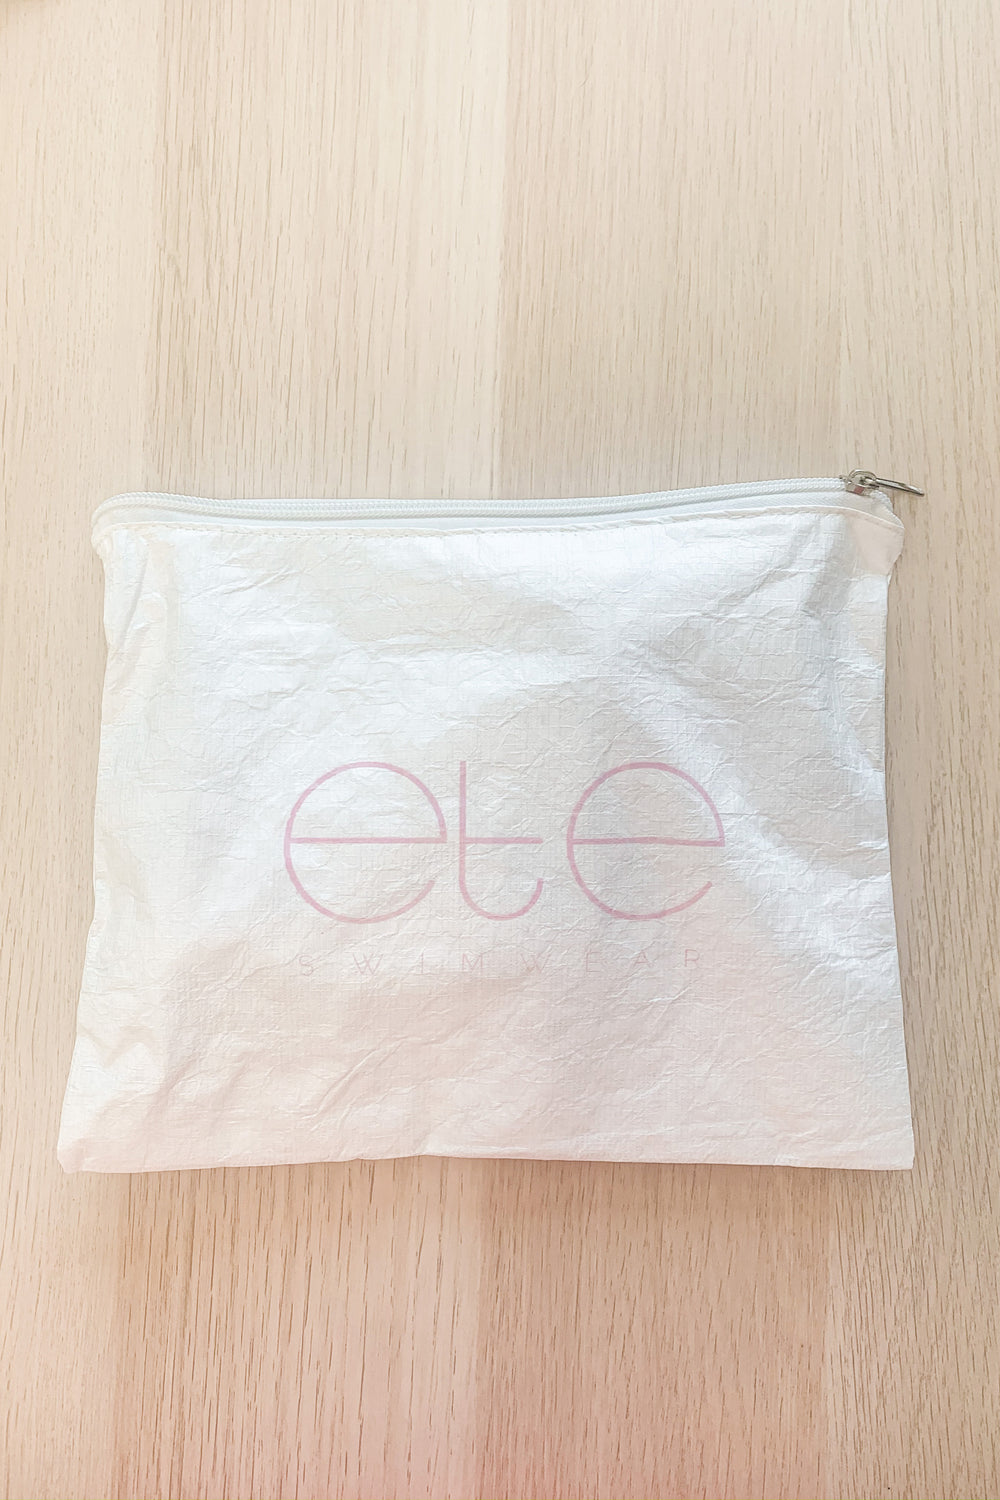 Ete Swimwear Splash-Proof Beach Bag